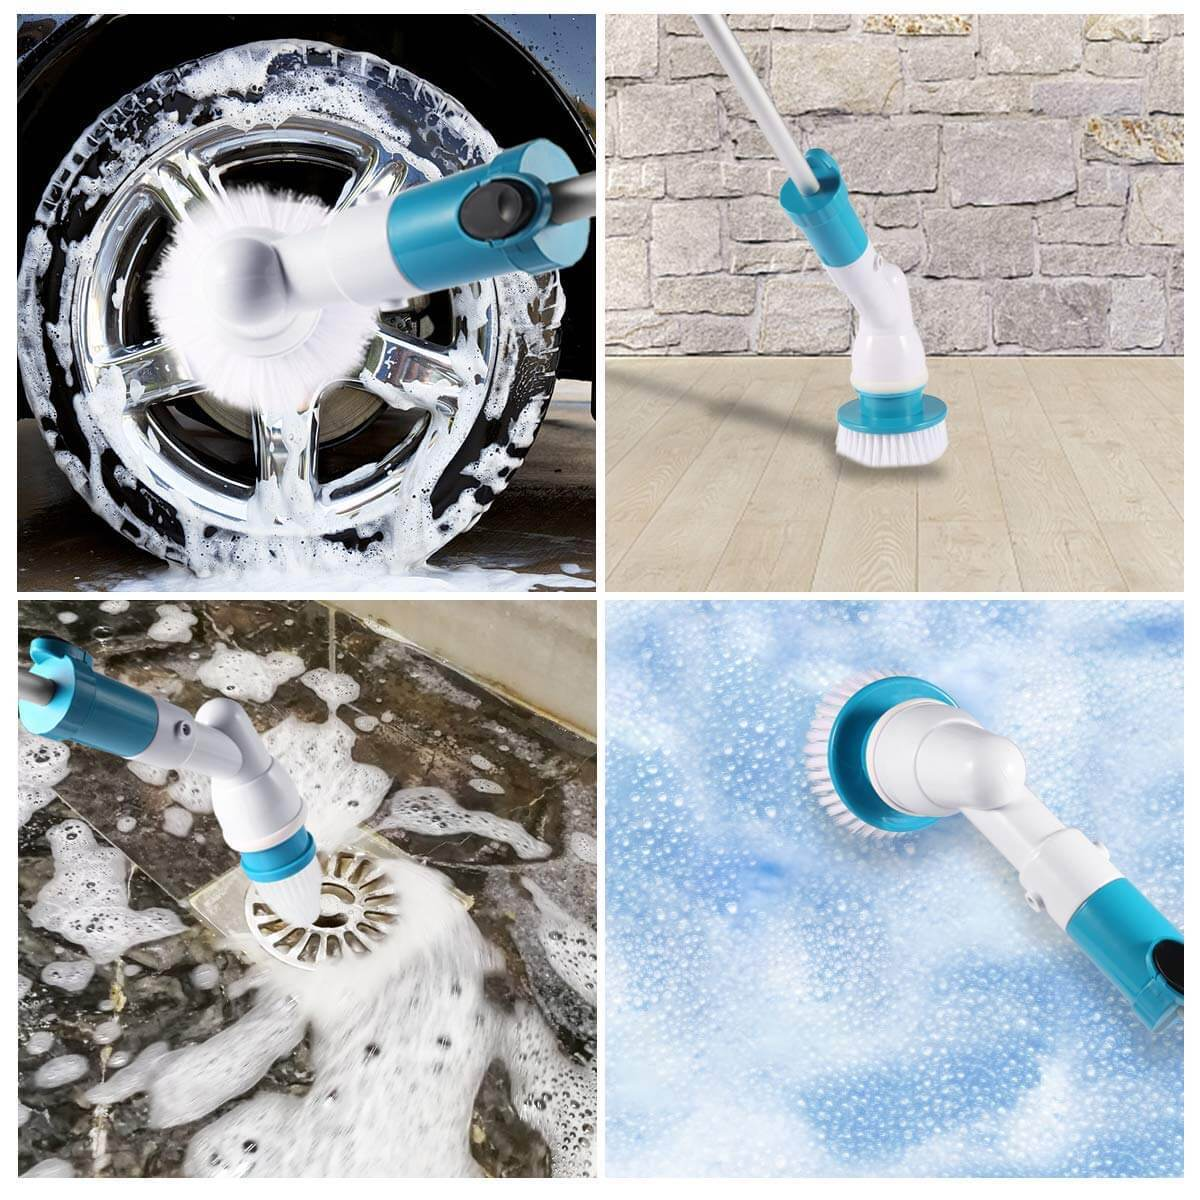 Magic Scrub Pro™ Cordless Power Scrubber